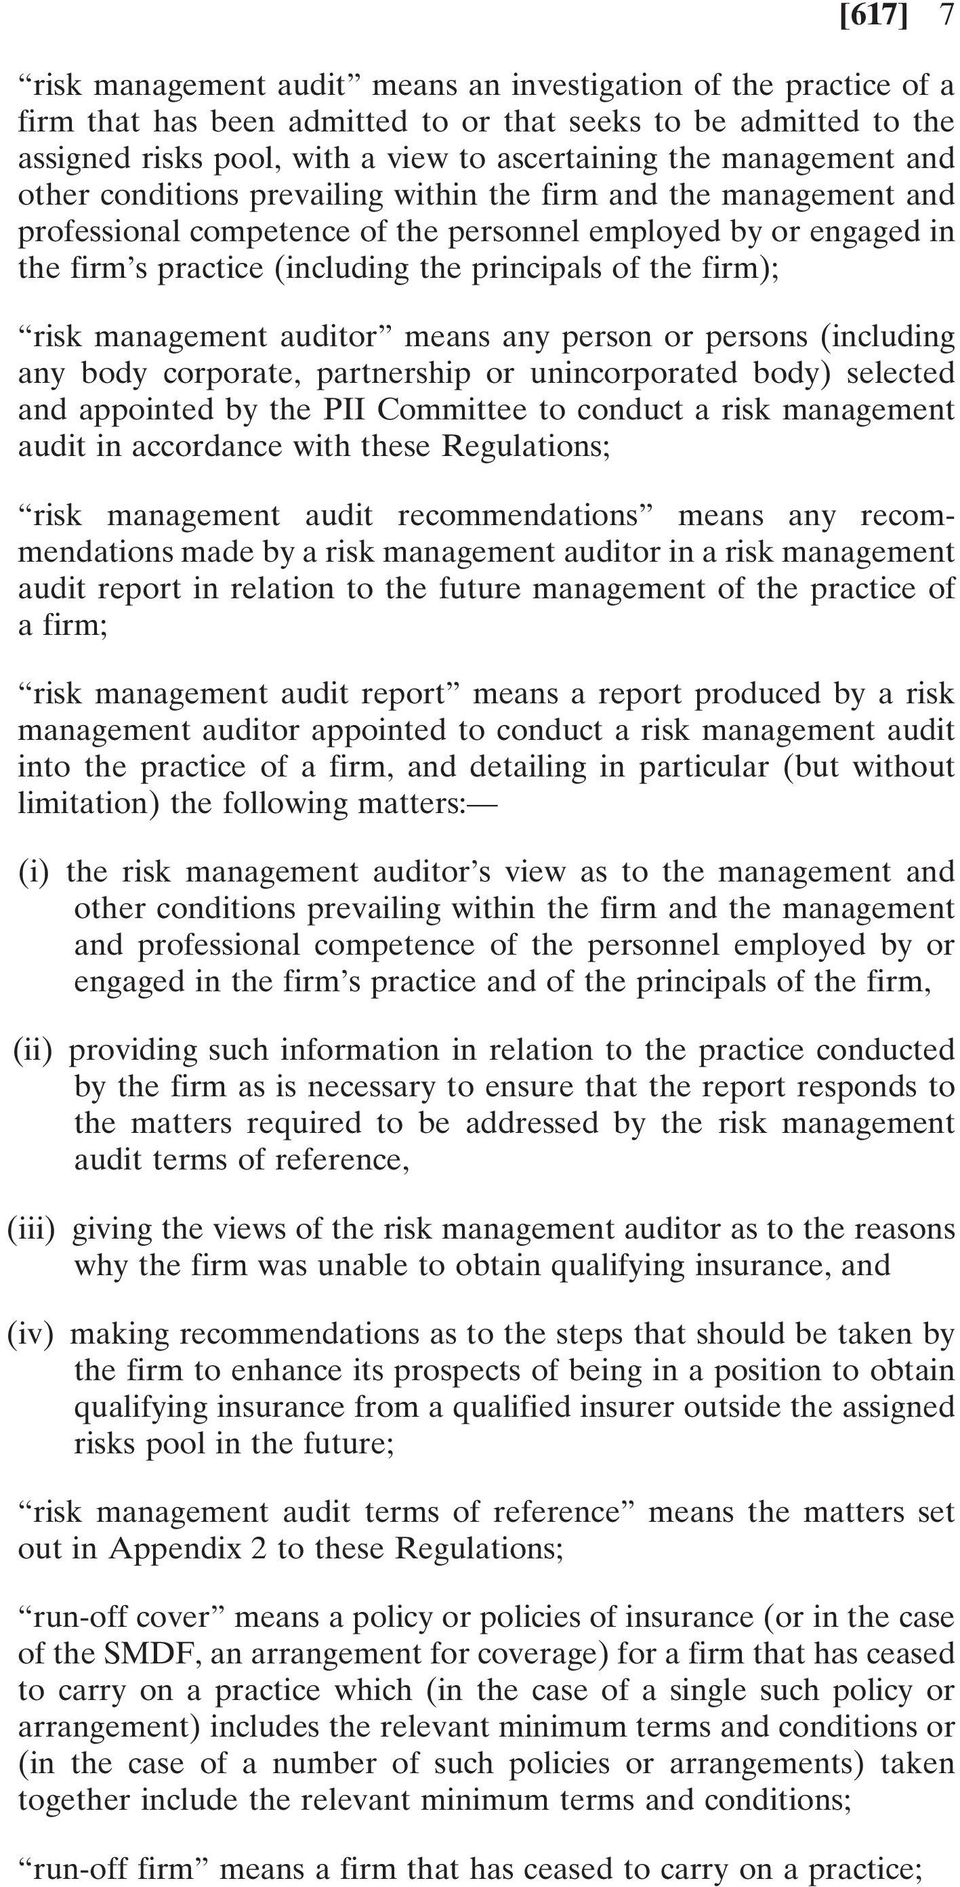 the firm); risk management auditor means any person or persons (including any body corporate, partnership or unincorporated body) selected and appointed by the PII Committee to conduct a risk